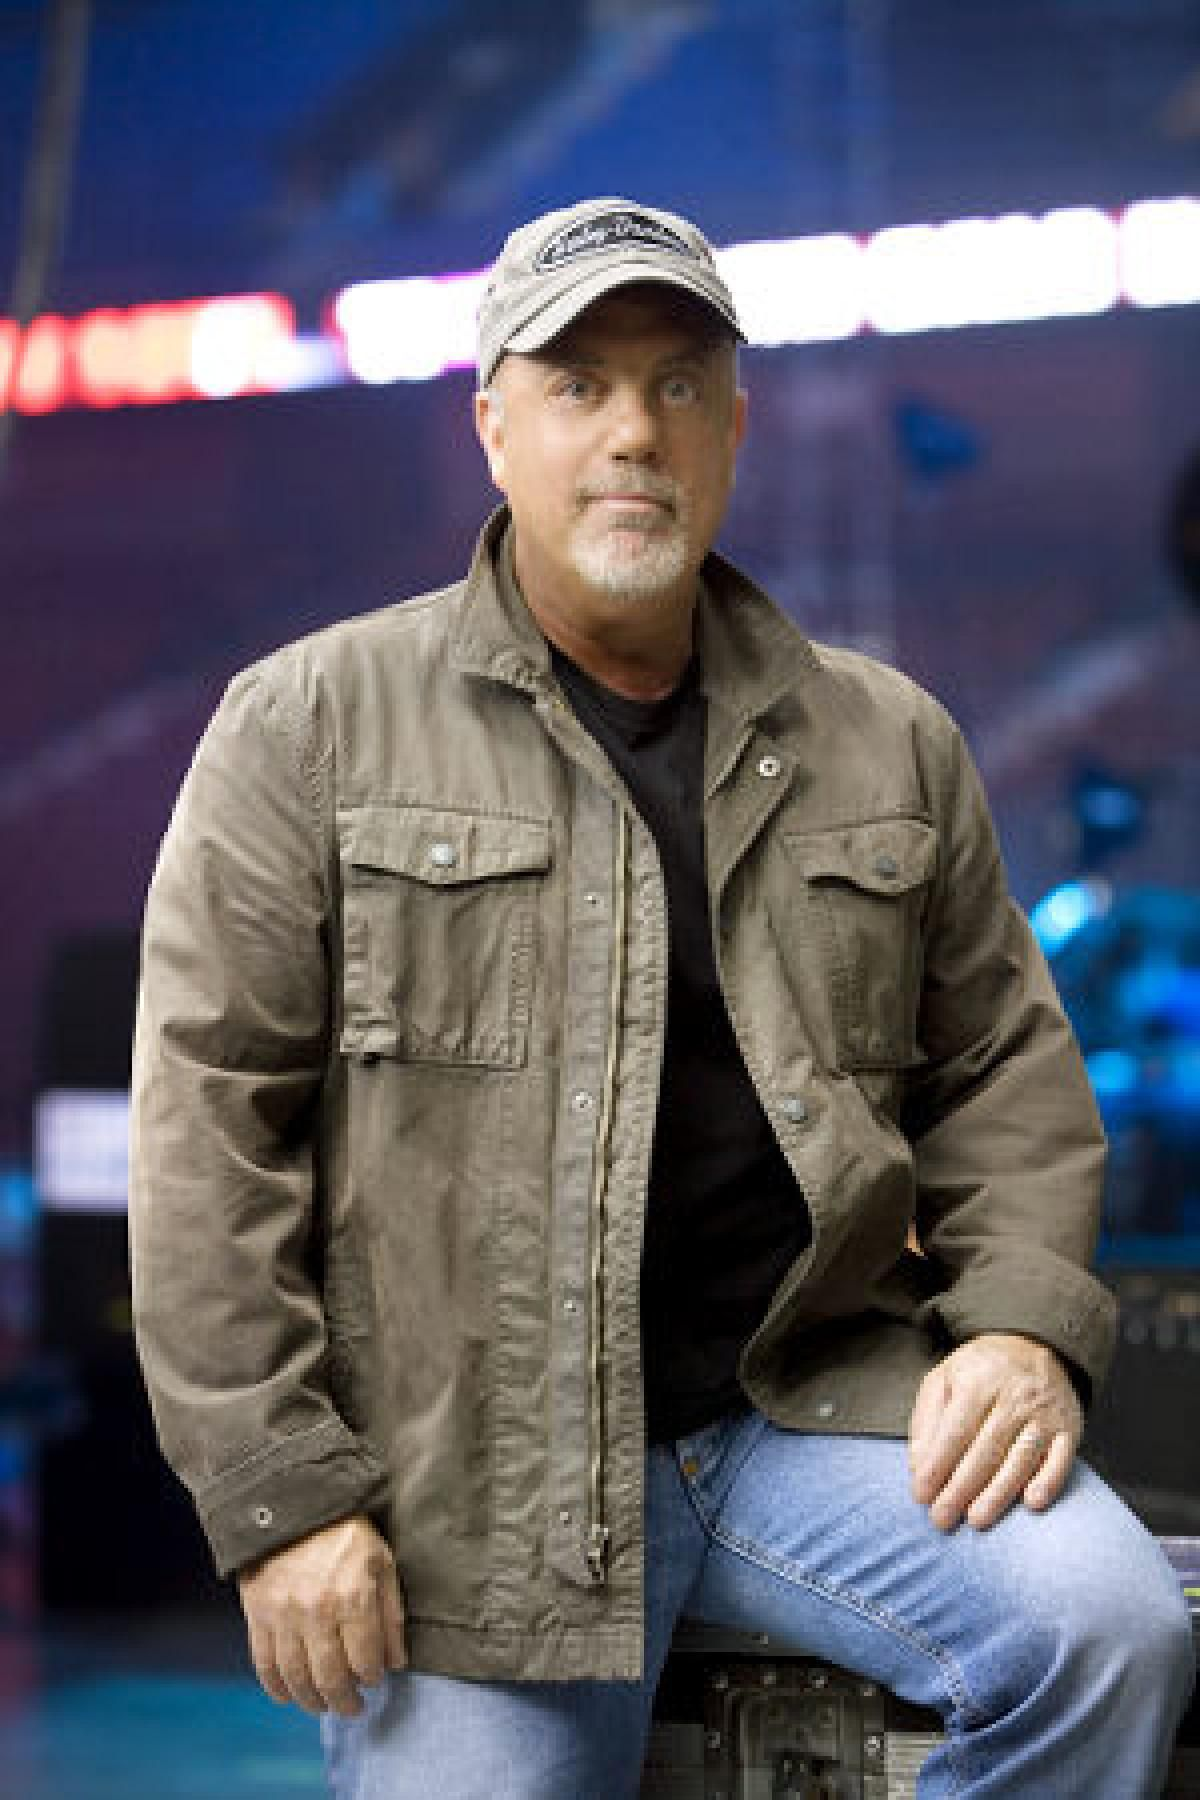 A look at the career of Billy Joel, who will be the final musician to perform at Shea Stadium.